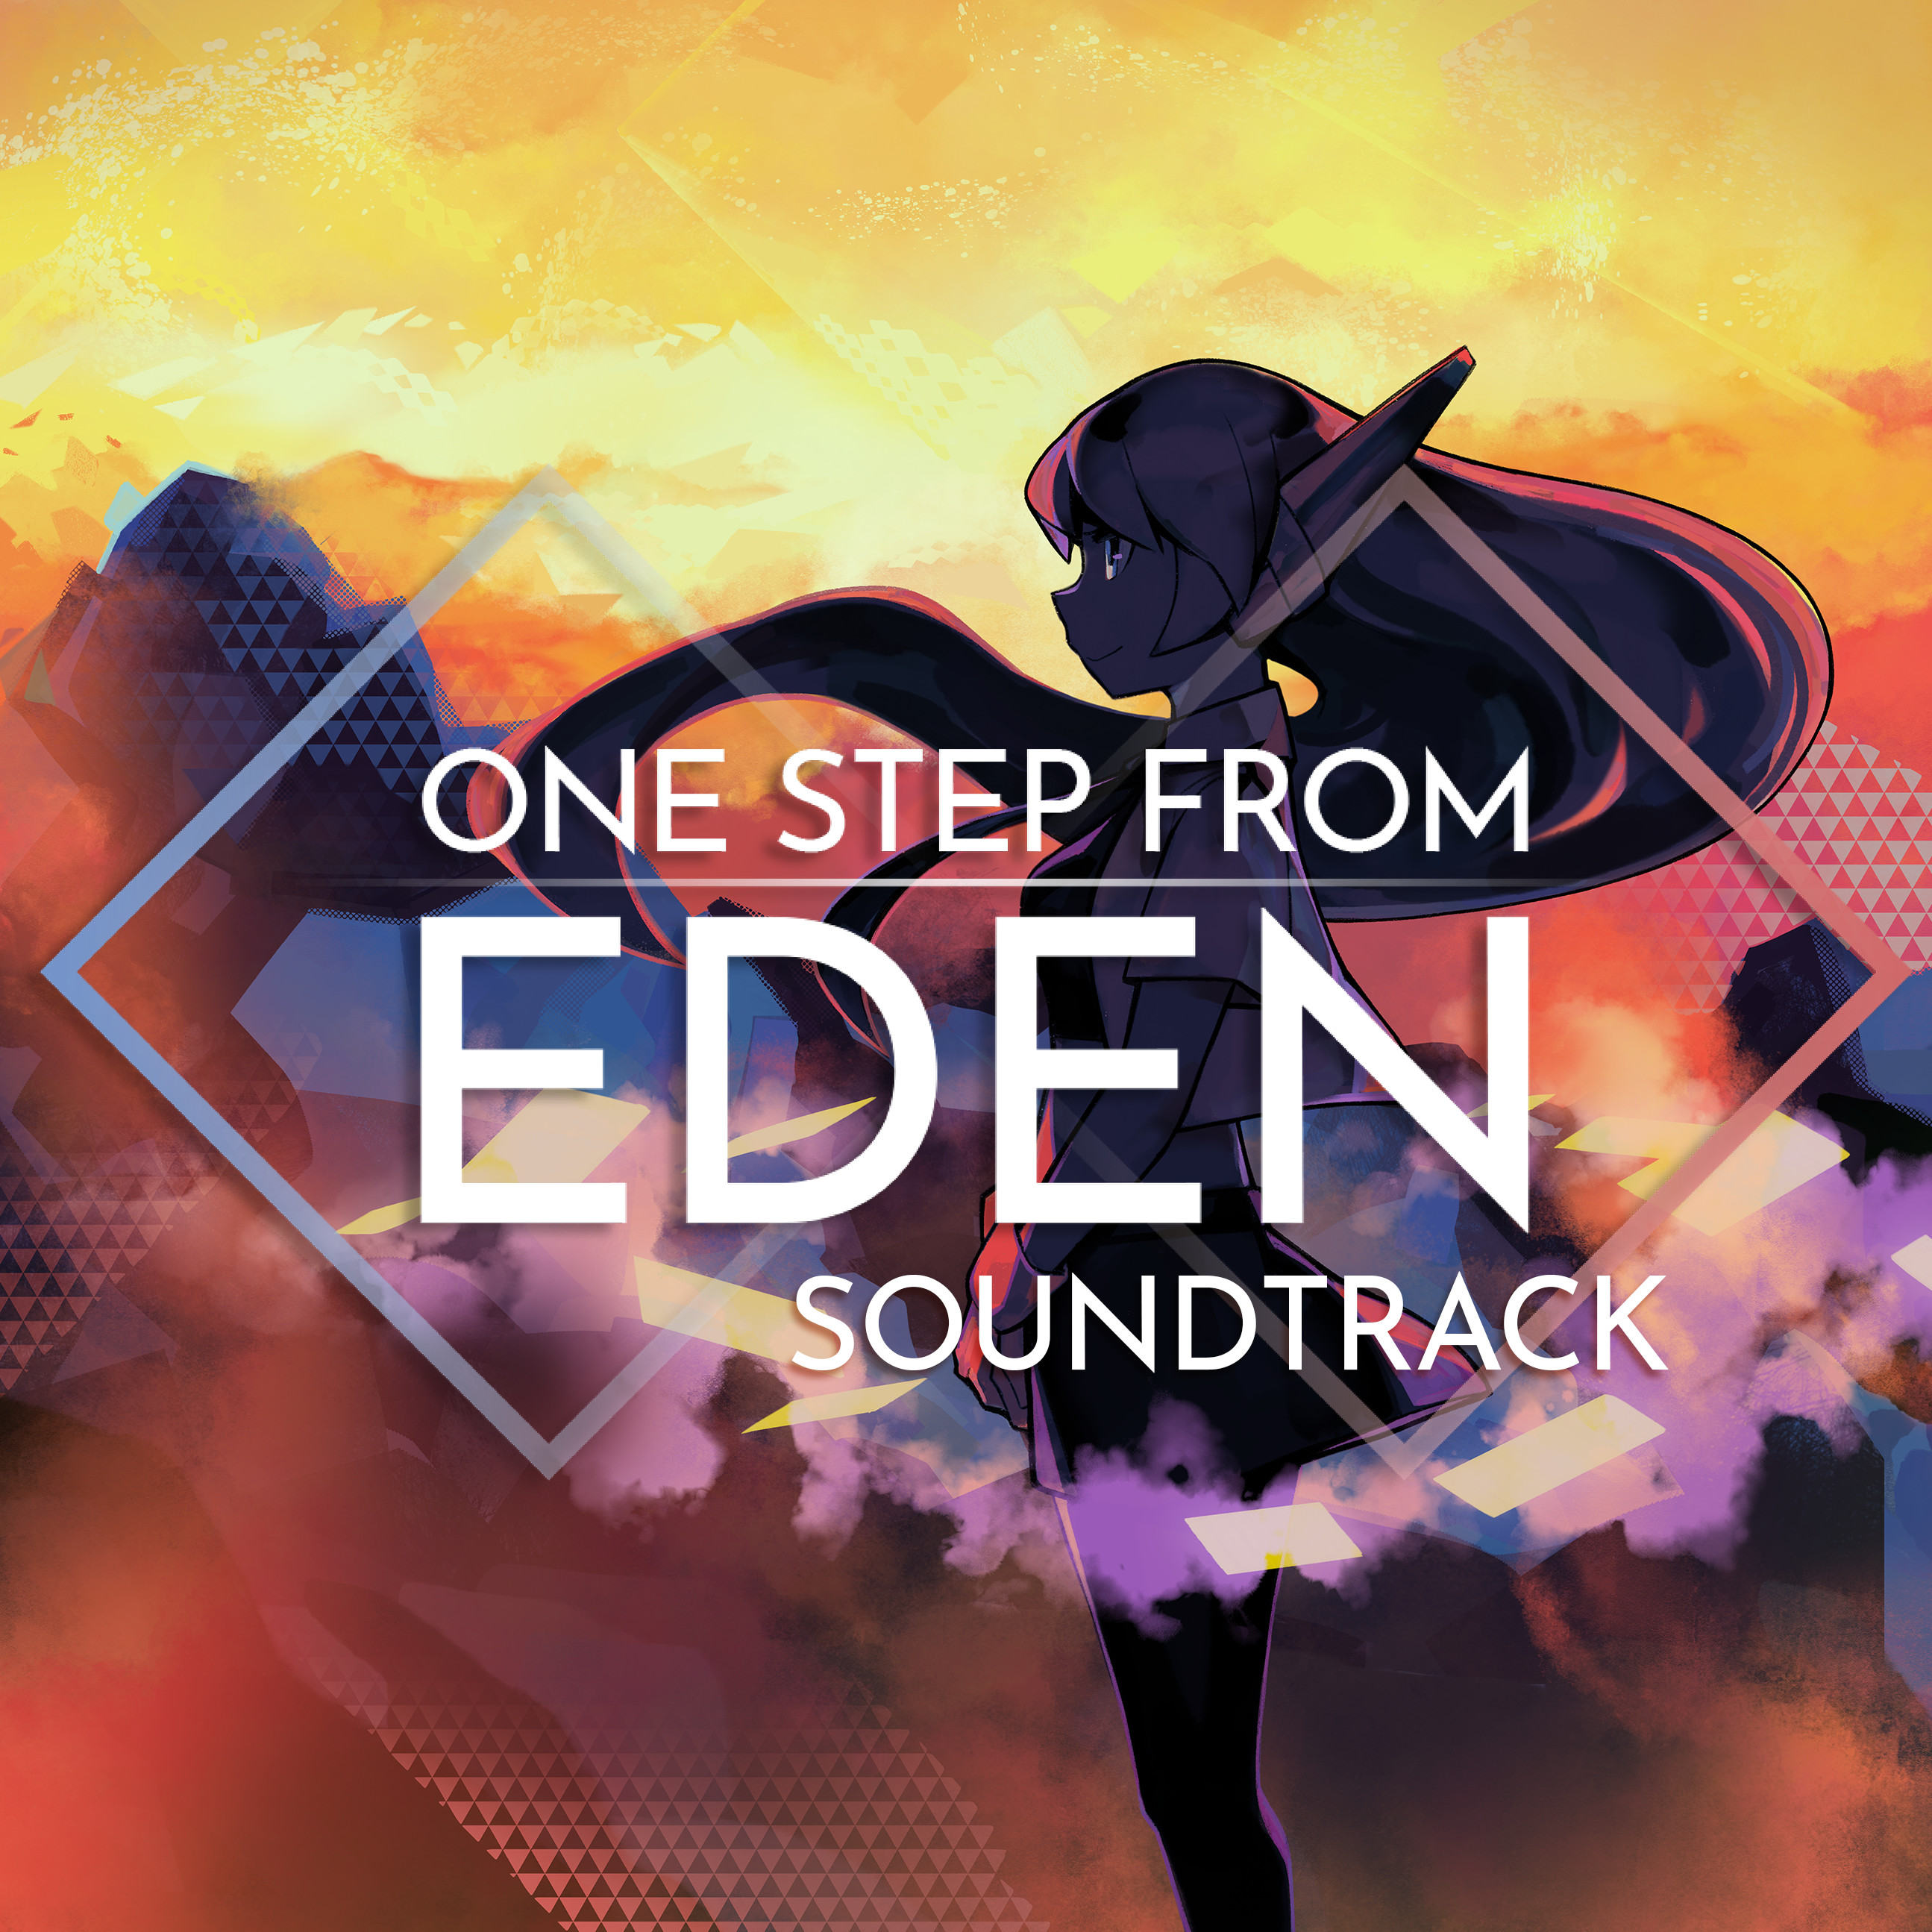 One Step From Eden Soundtrack screenshot